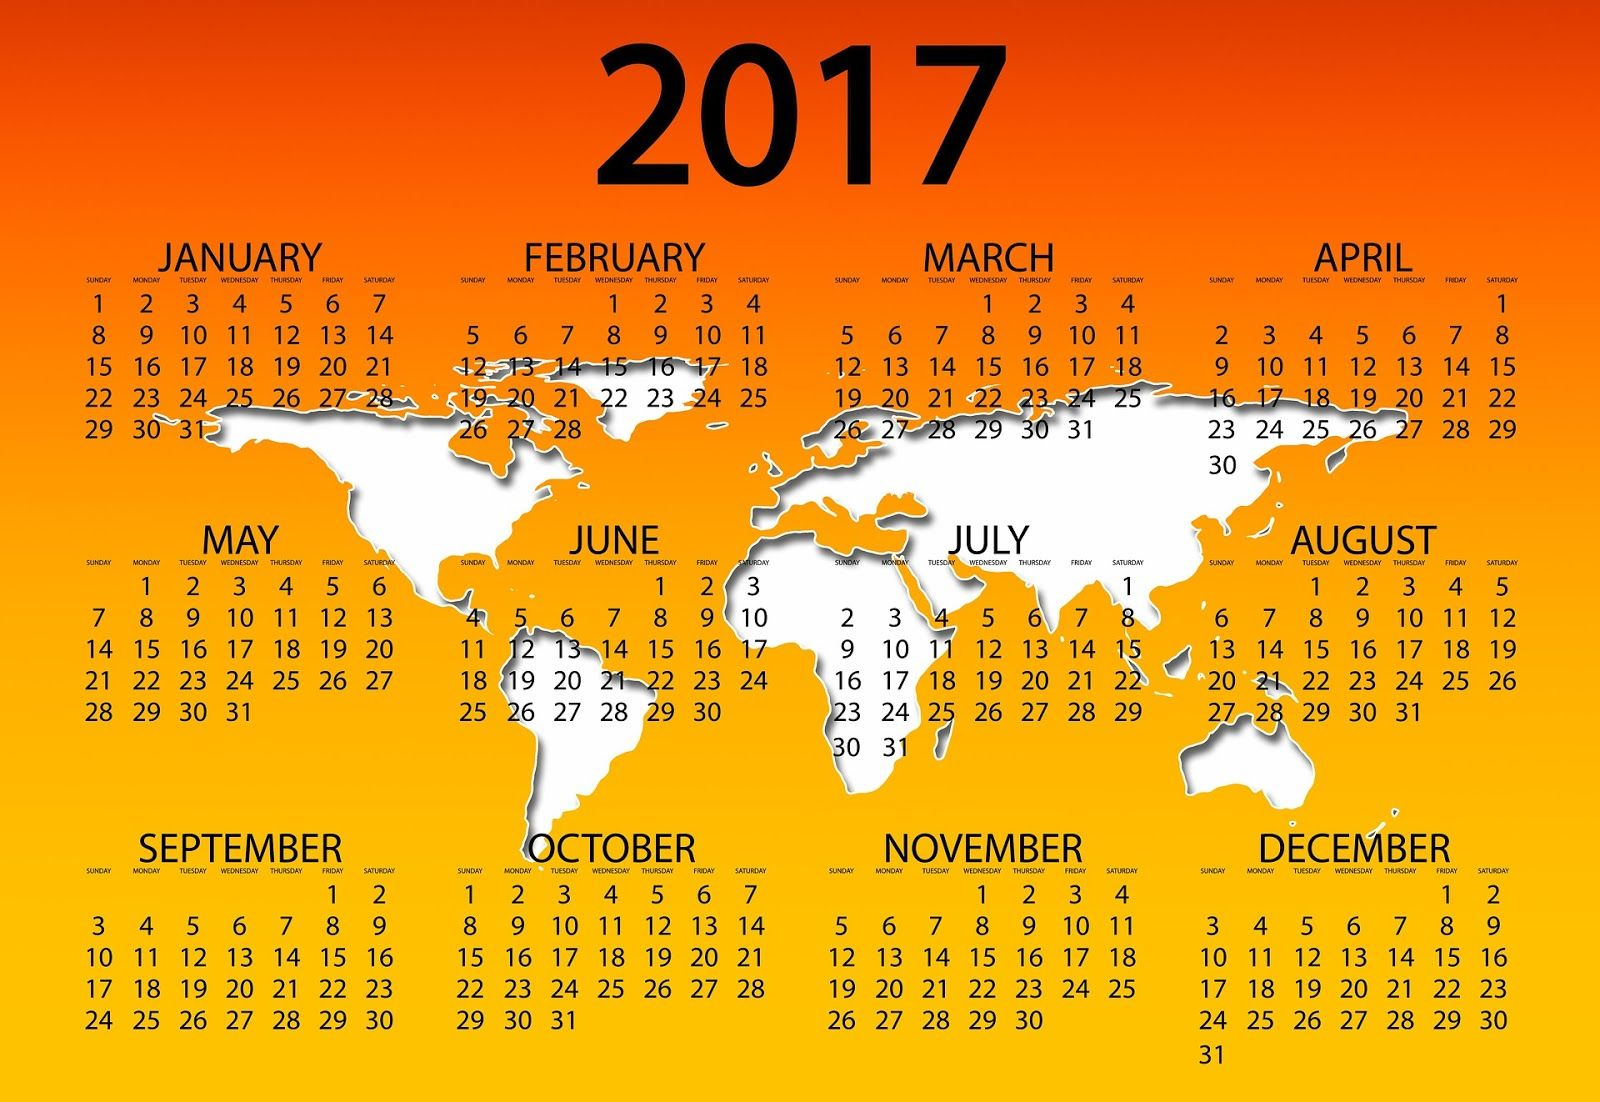 Hd wallpaper new 2017 - Happy New Year 2017 Hd Wallpaper Collections